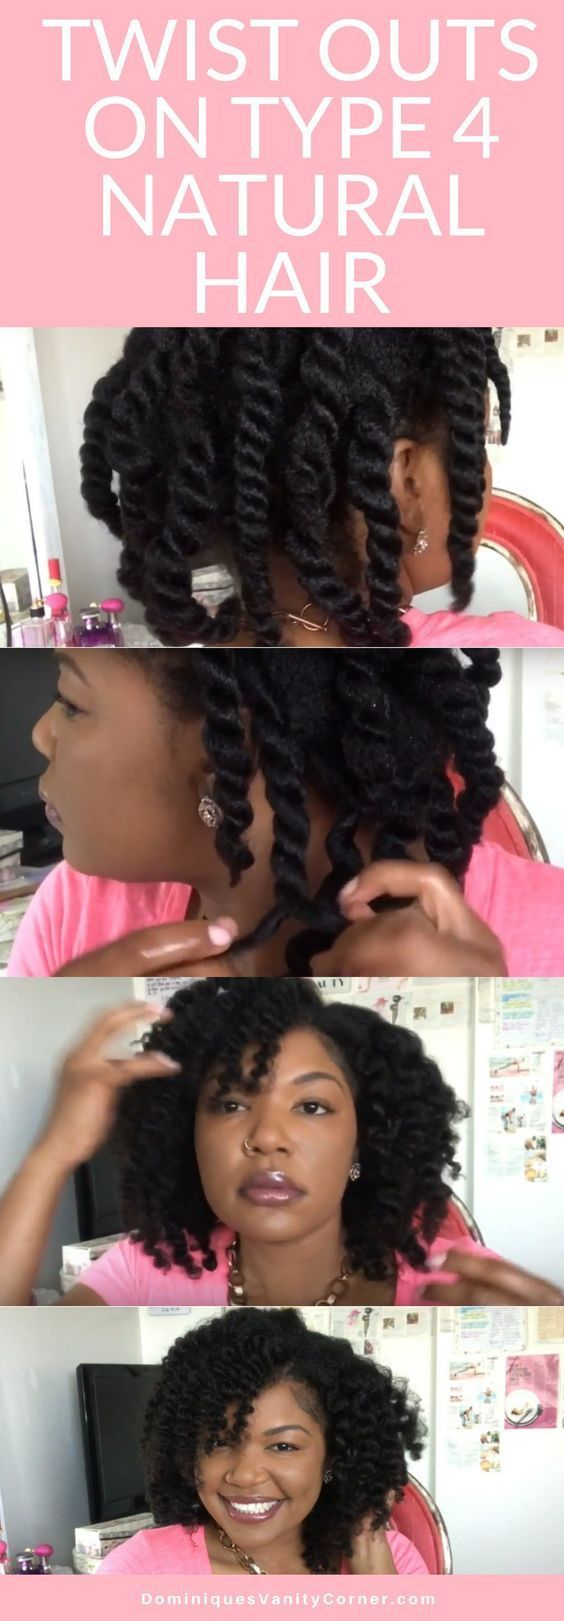 Twists outs on type 4 natural hair